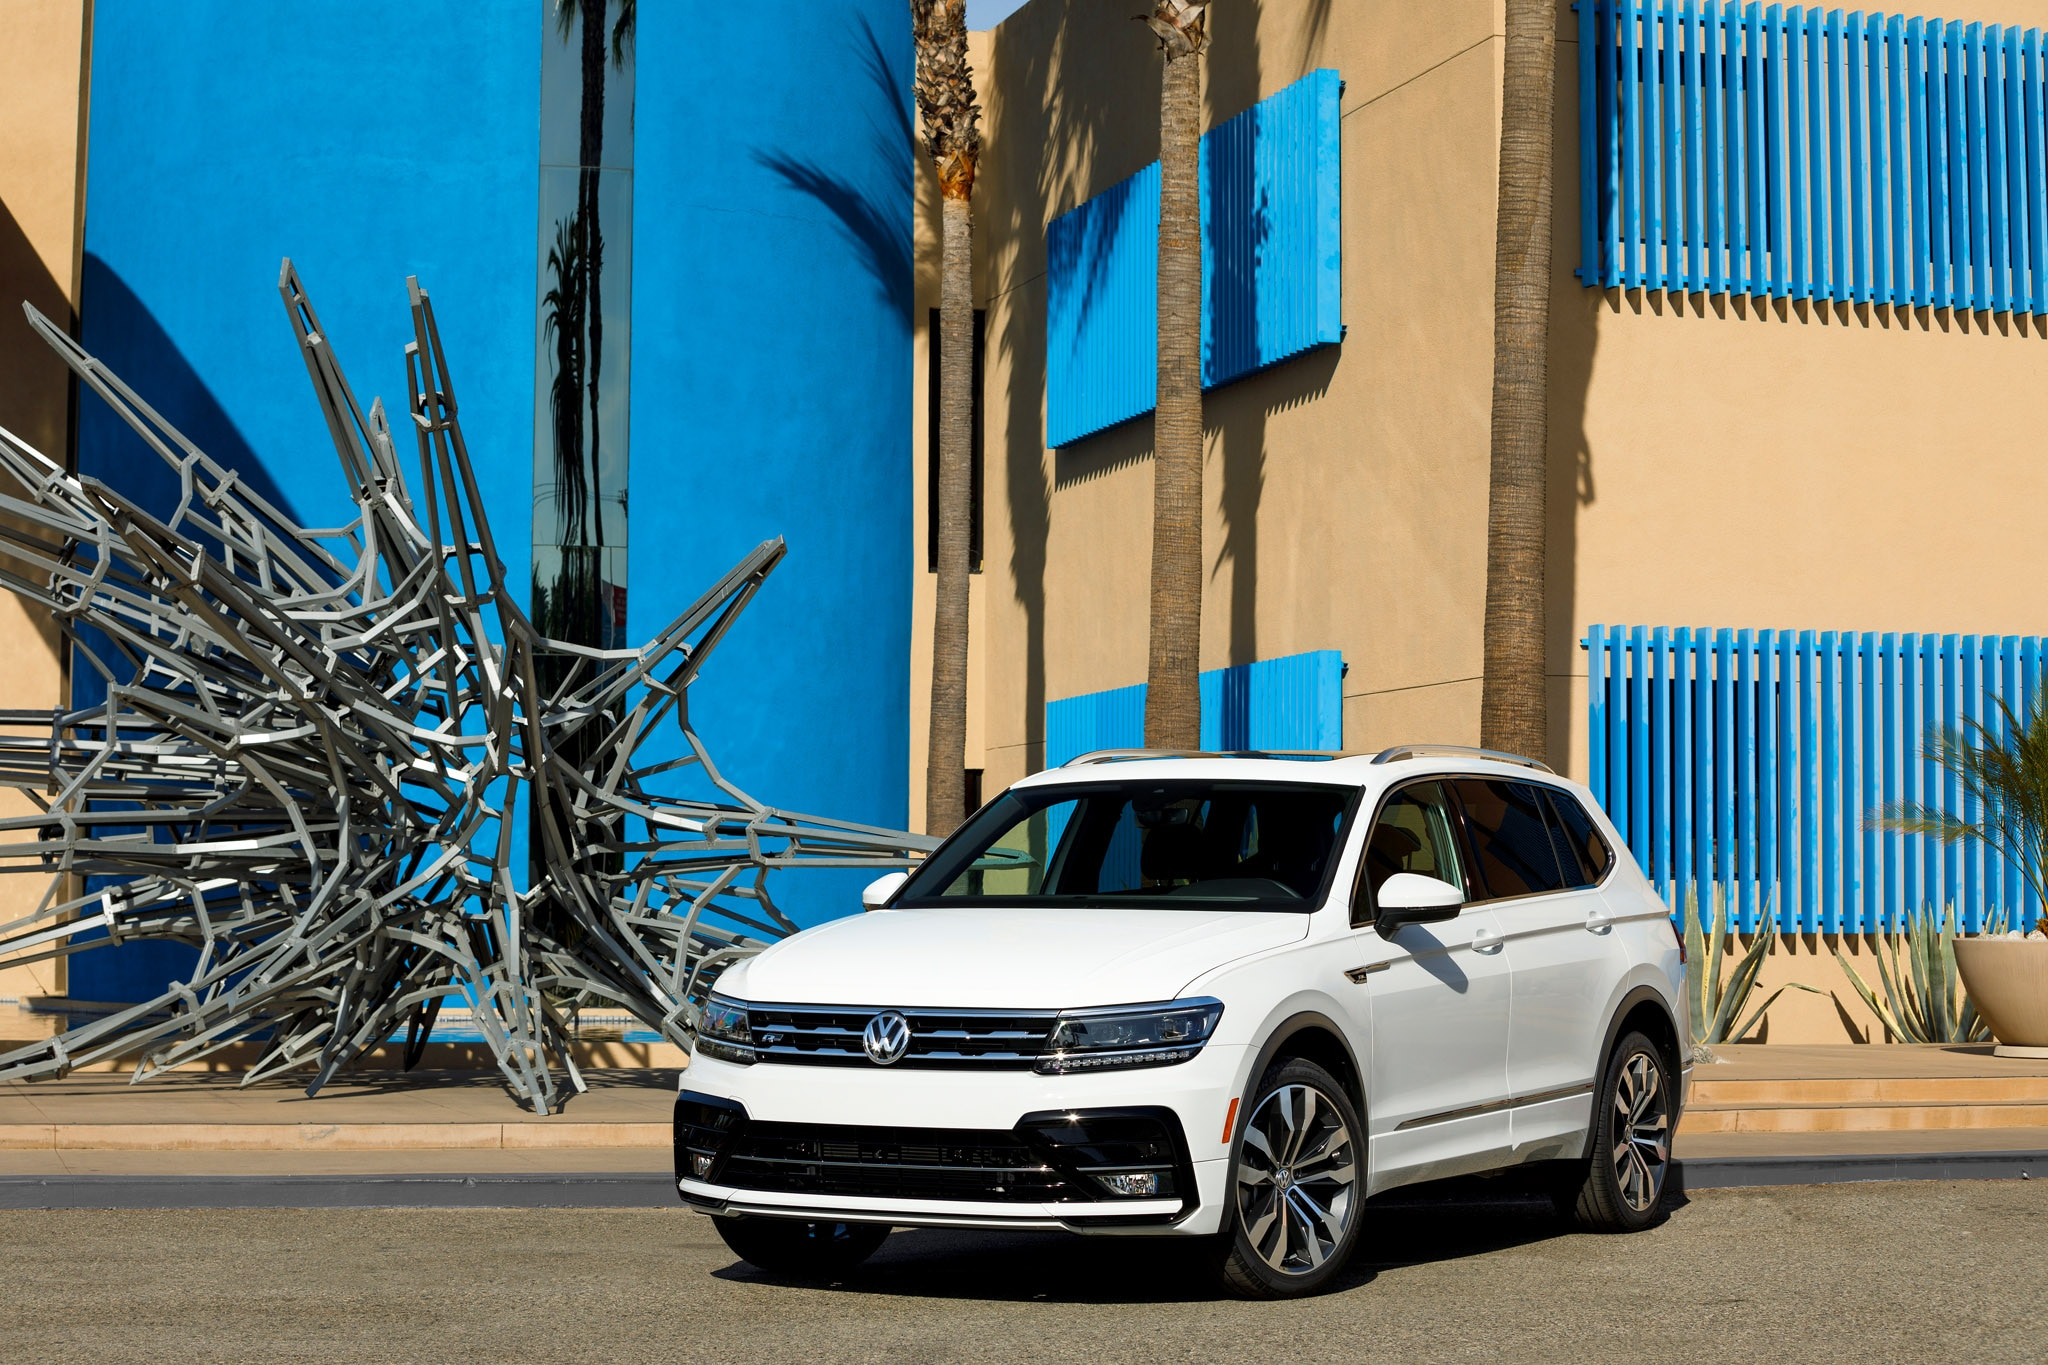 Volkswagen Tiguan dressed up with new R-Line appearance package